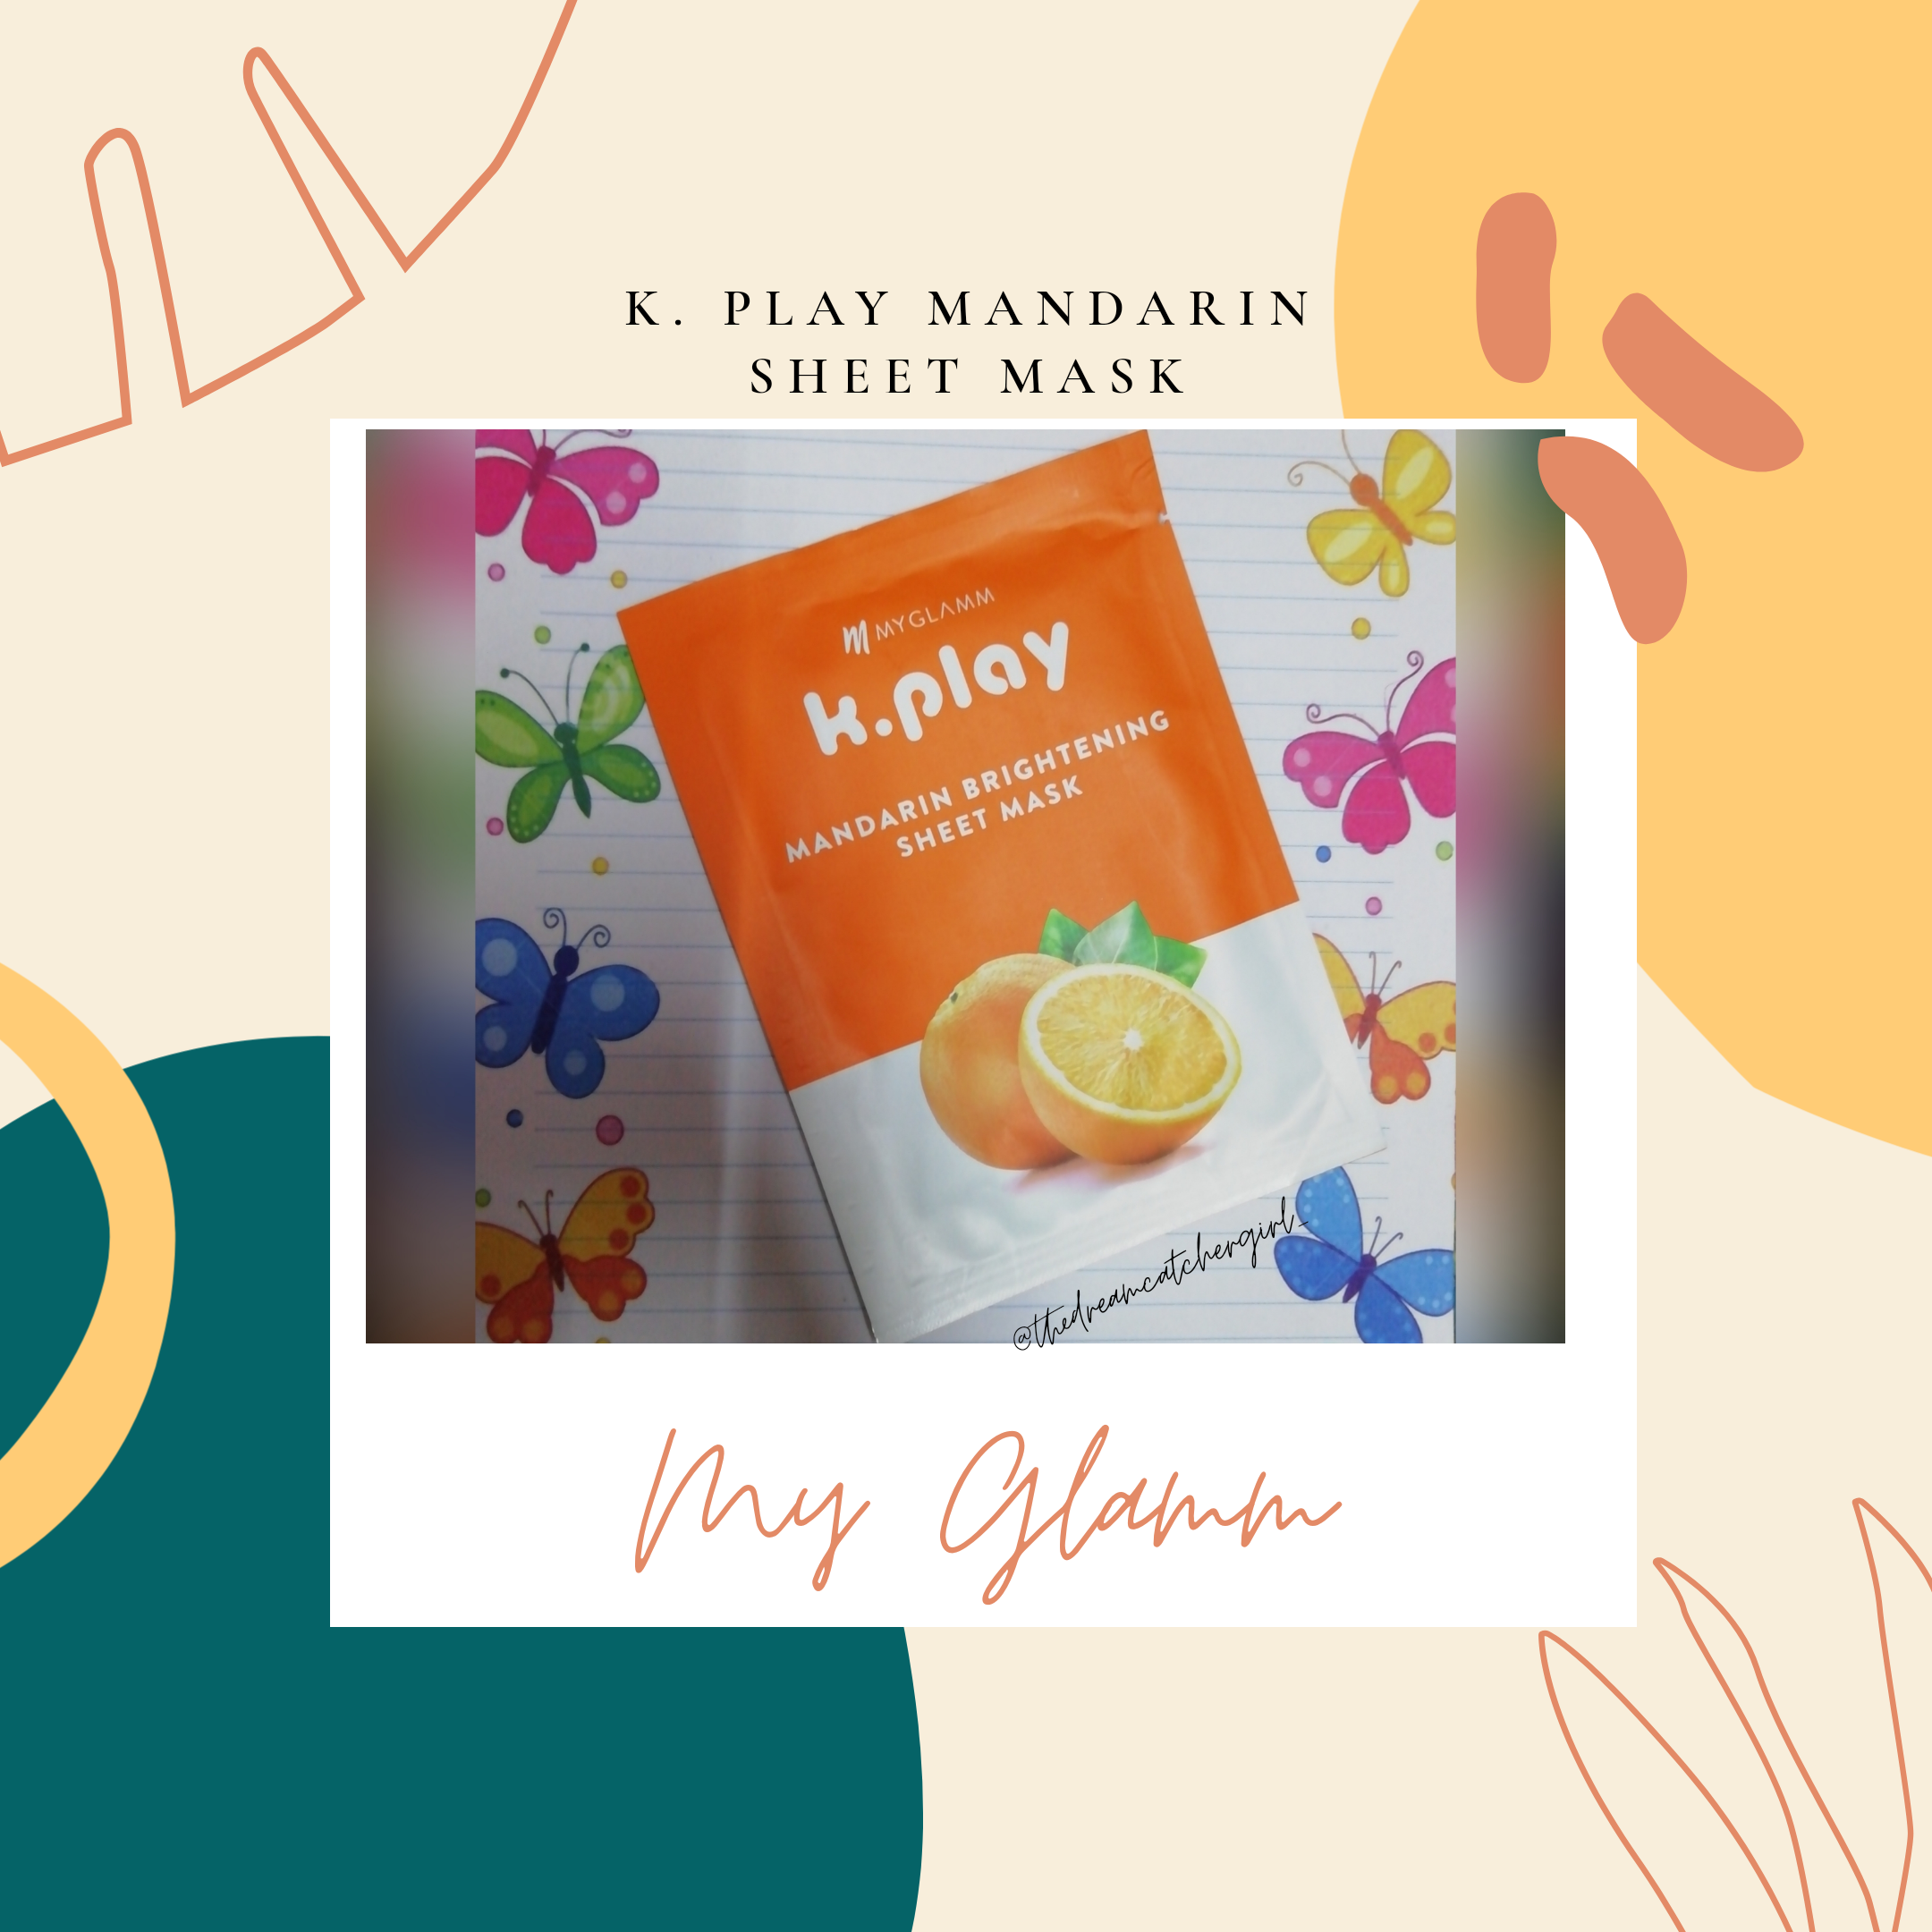 MyGlamm K.Play Mandarin Brightening Sheet Mask-Refreshing sheet mask-By charu_malhotra